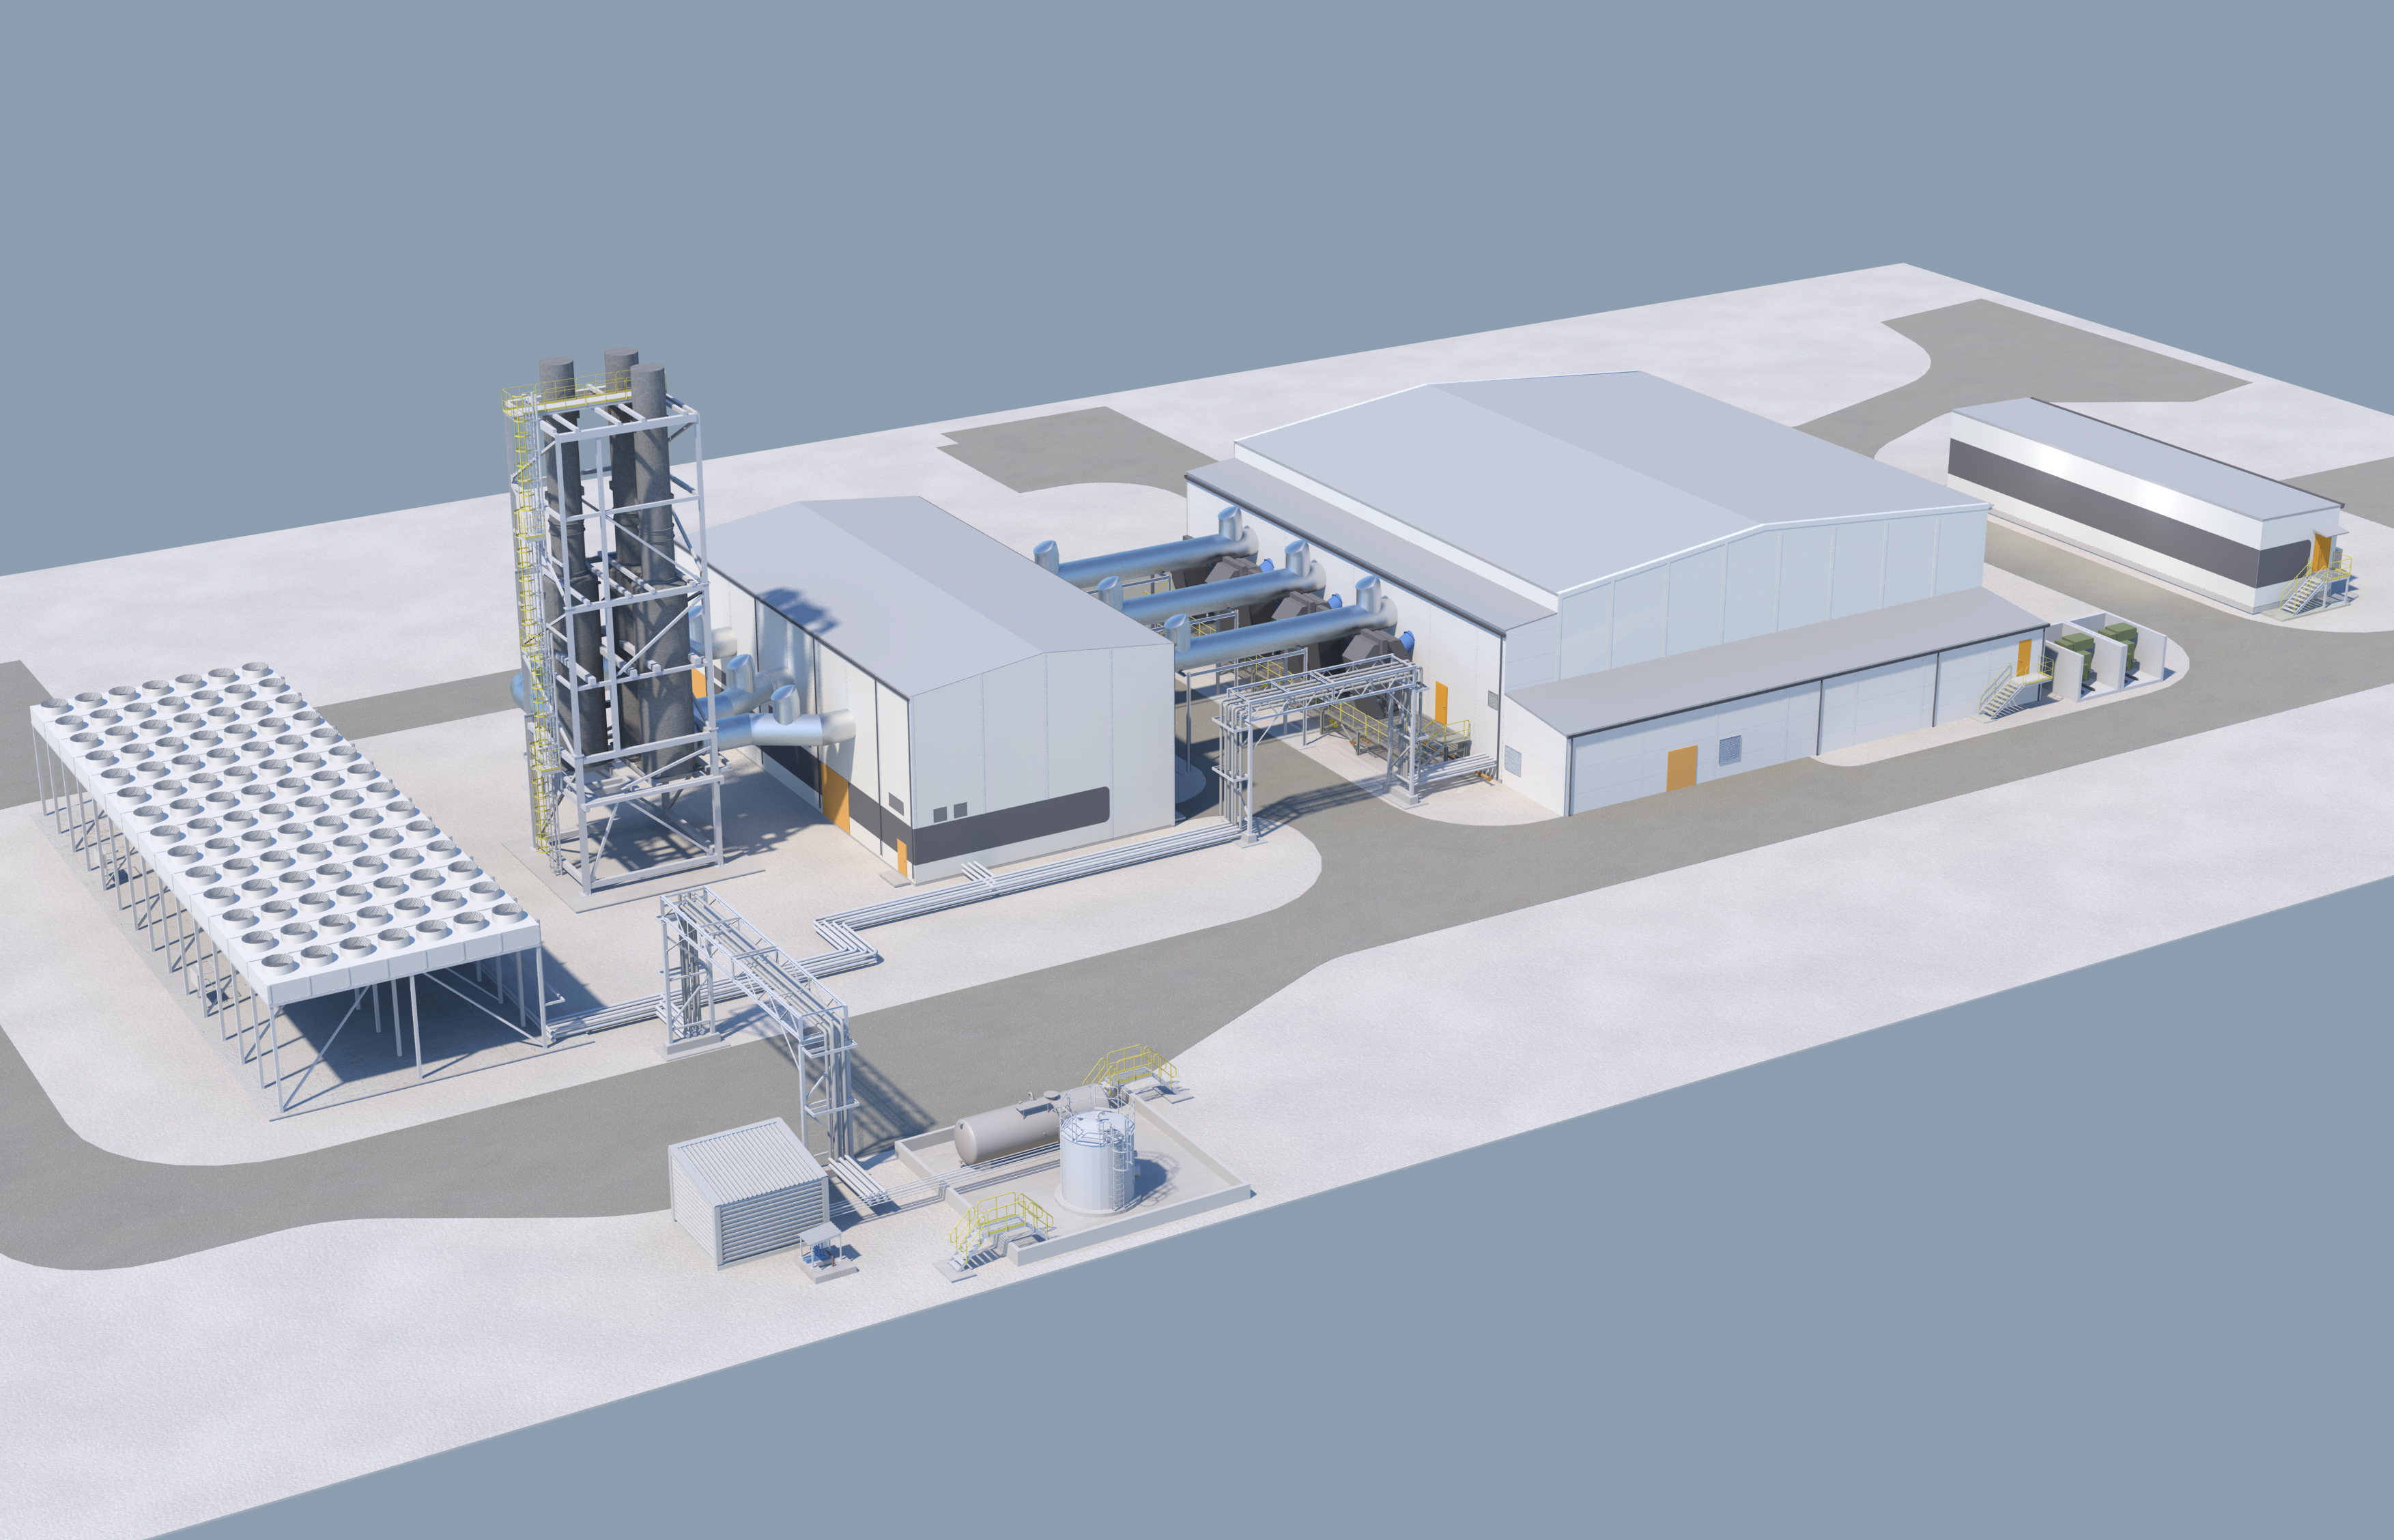 Wrtsil Delivers Technology To Modernize A Power Plant At Pulp And Diagram Of Link Image